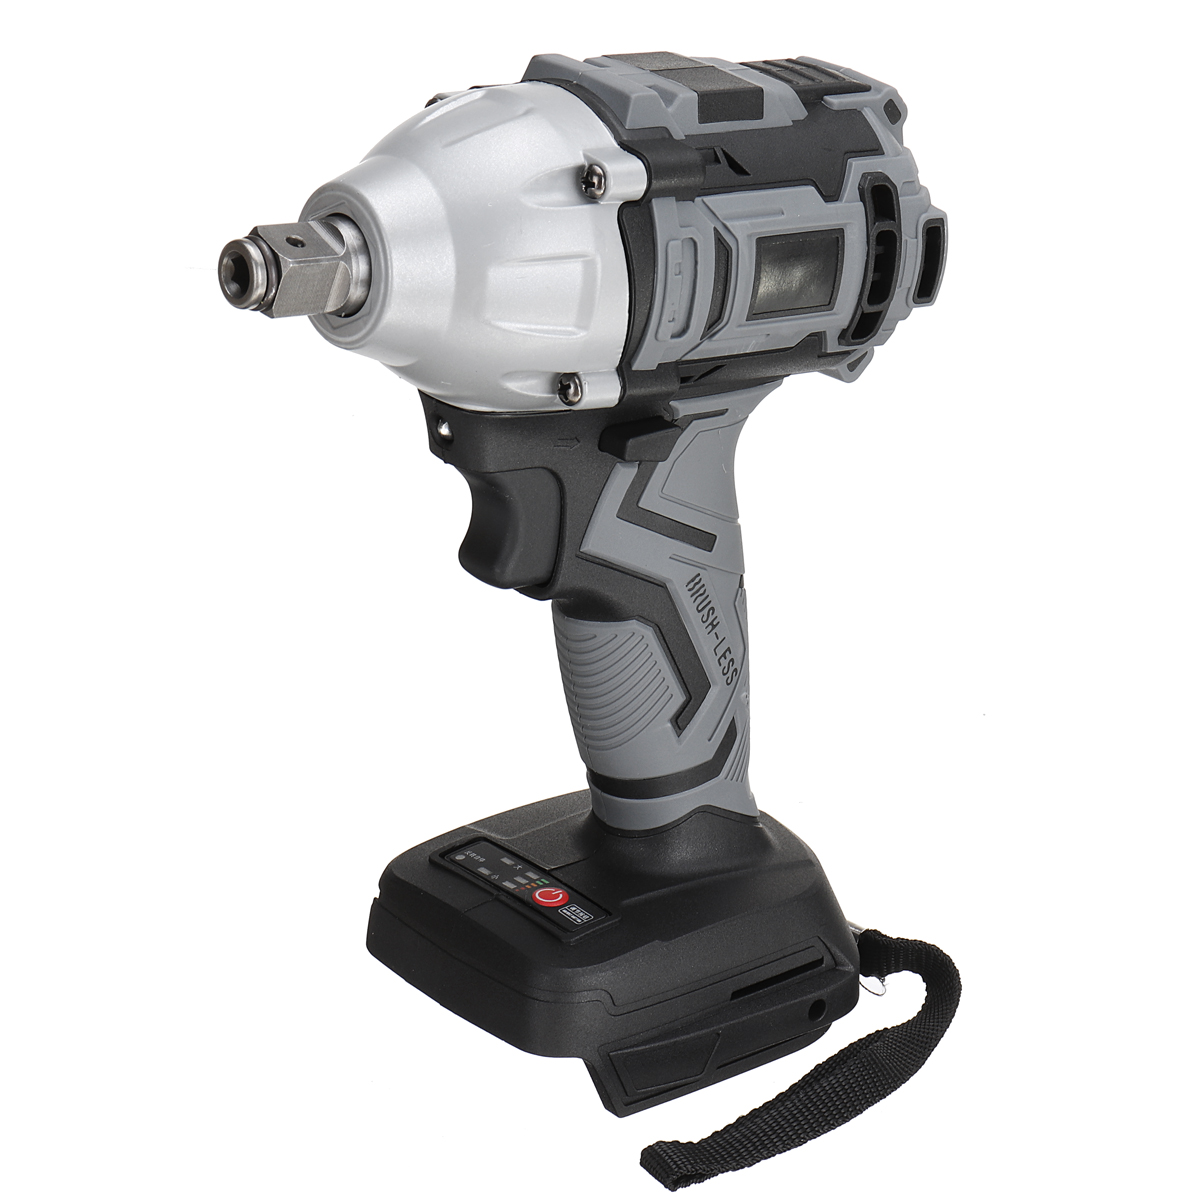 18V Cordless Electric Wrench Screwdriver 588N.M 4000RPM Driver For Makita Battery